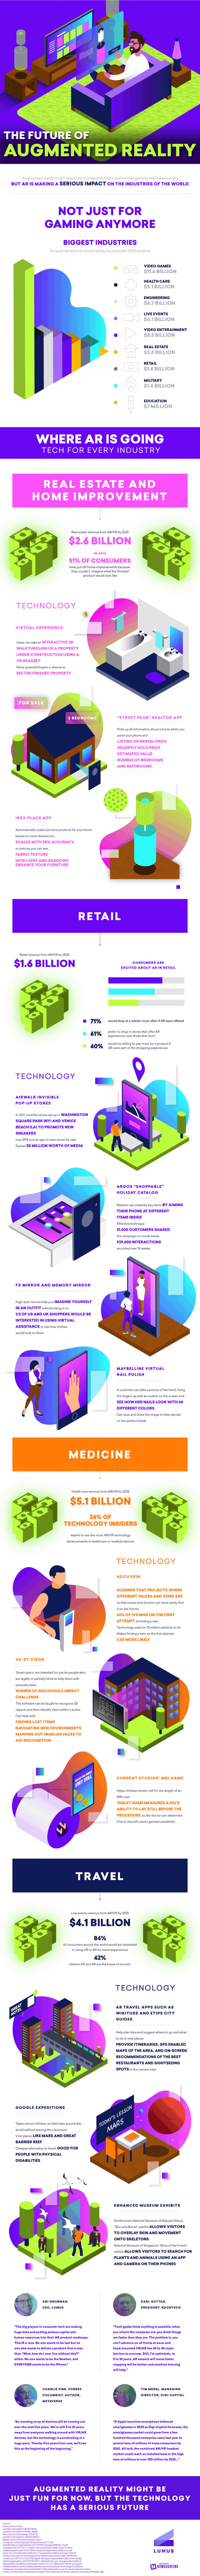 2018 augmented reality trends